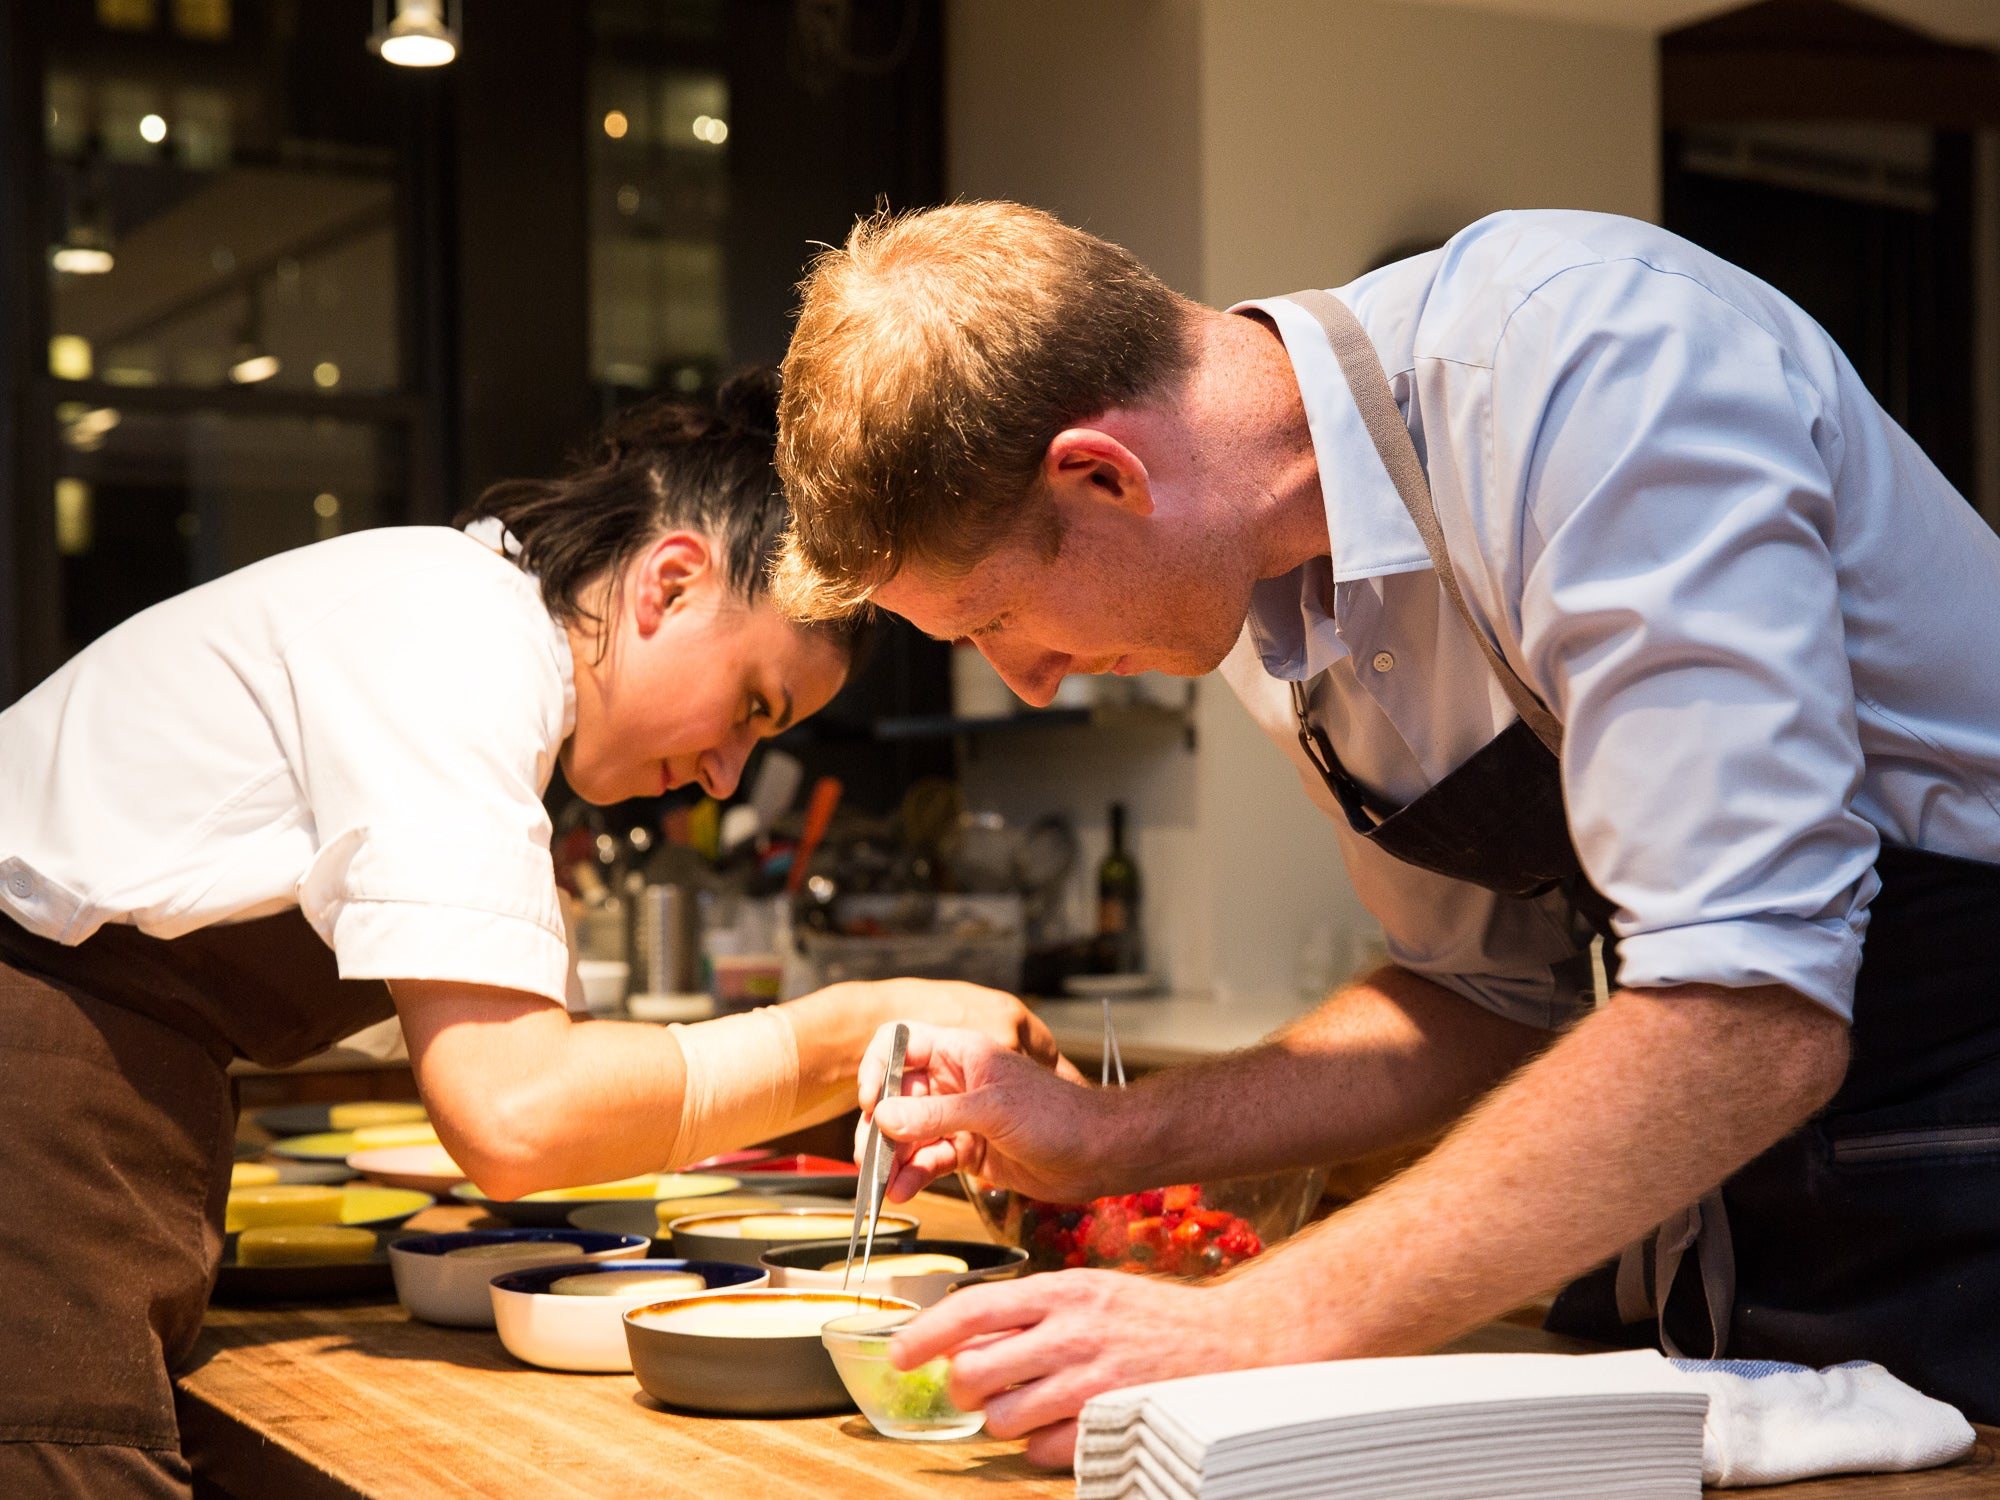 Scenes From Our SAVEUR Supper with Greg Baxtrom